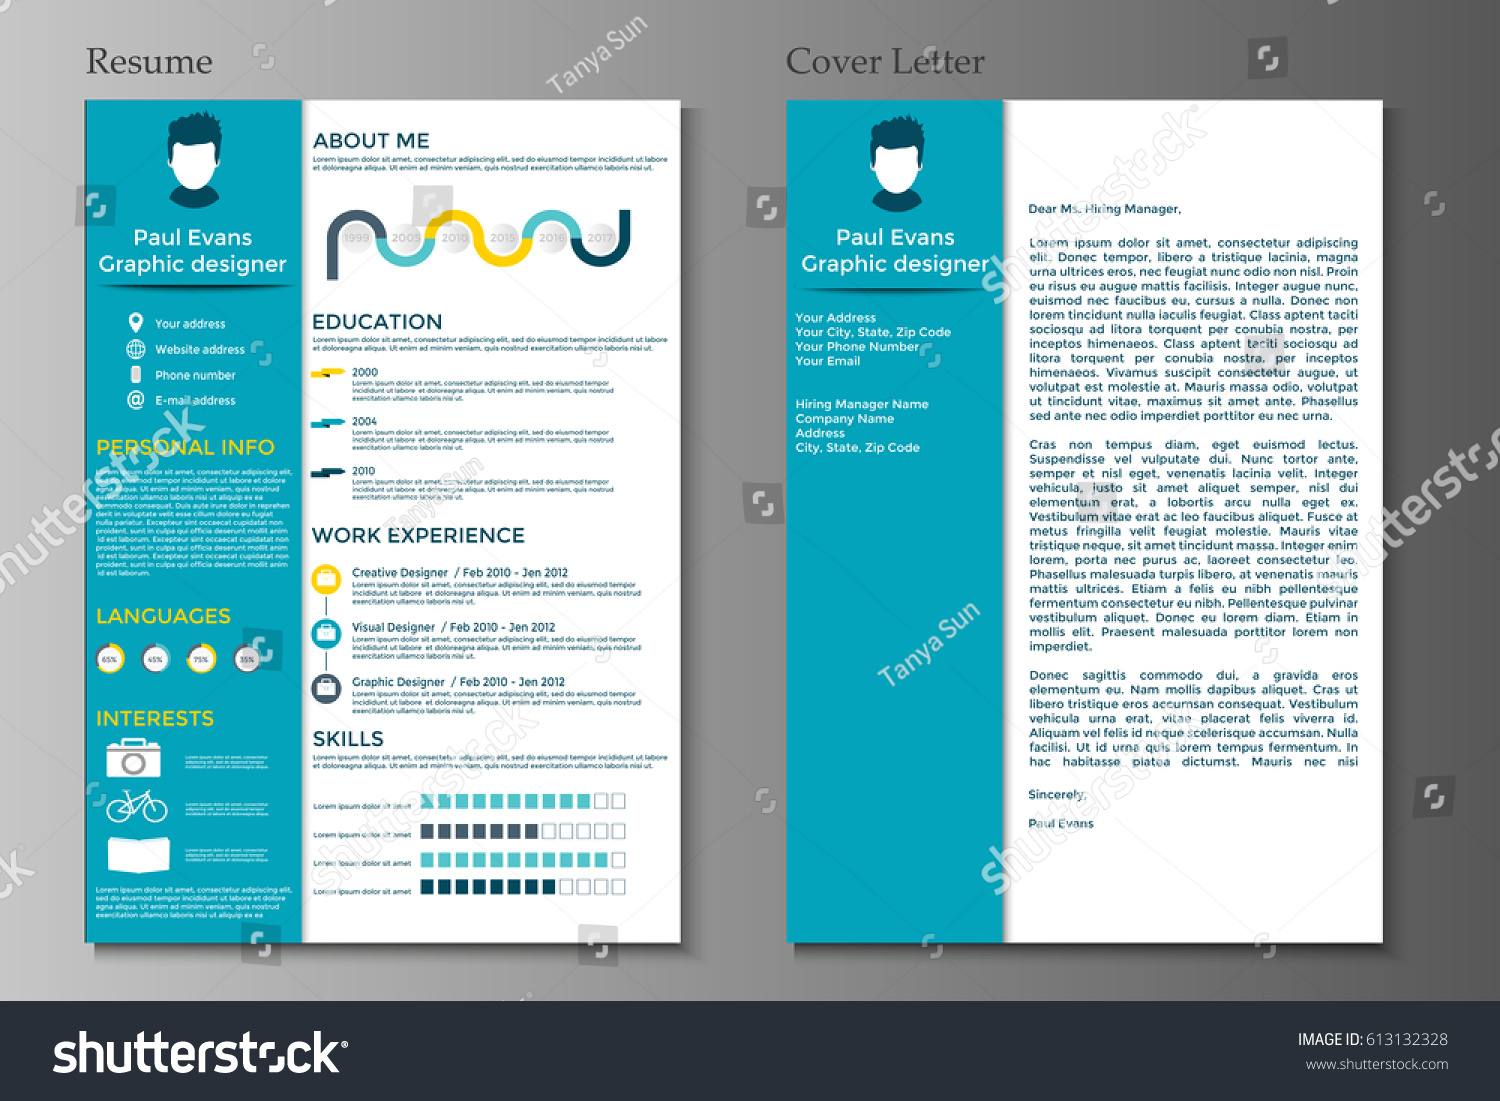 Resume And Cover Letter Collection. Modern CV Set With Infographics  Elements. Awesome For Job